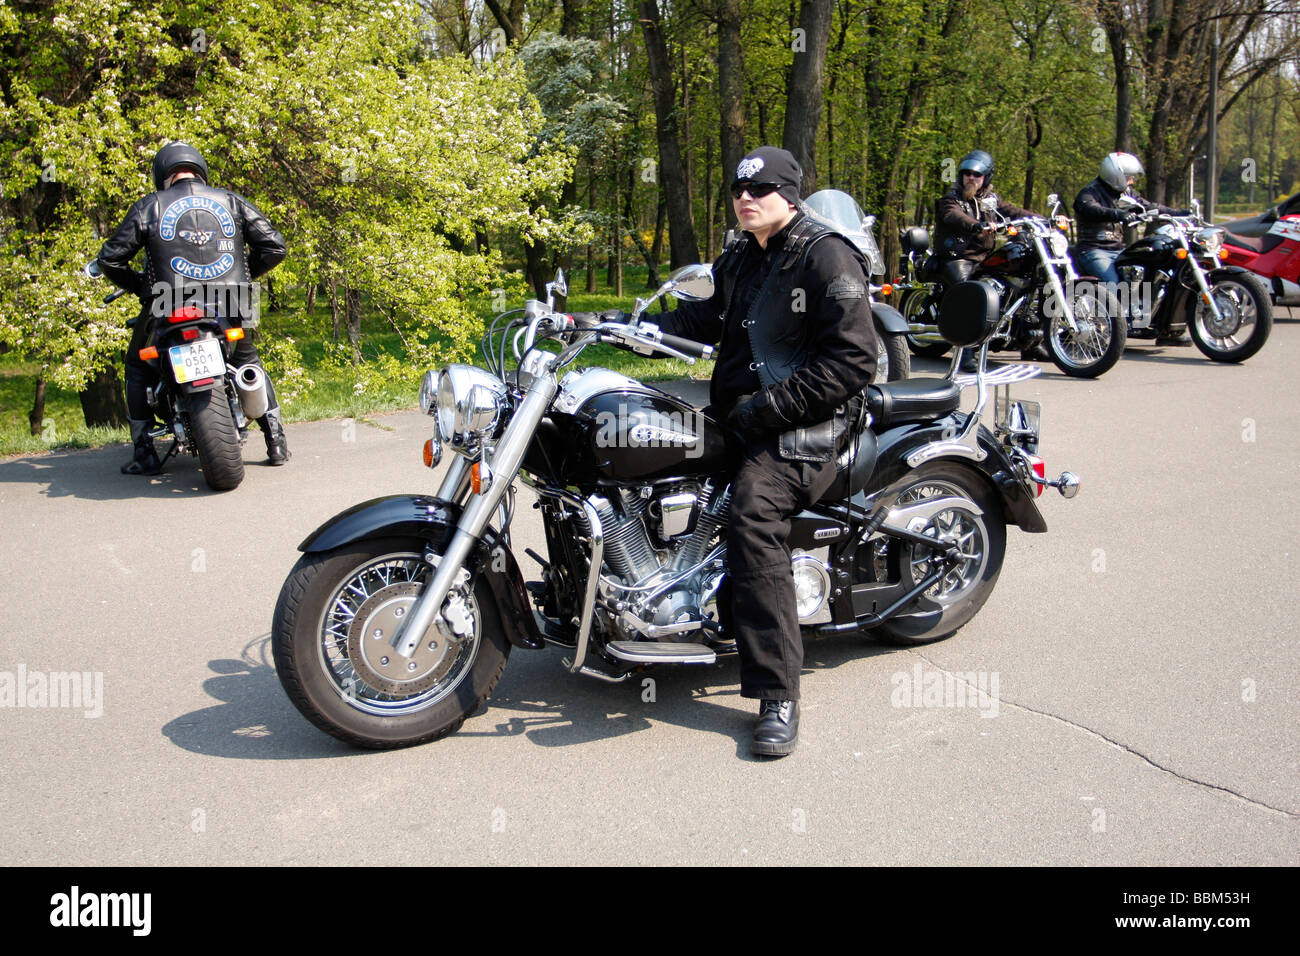 Members of Kyiv Kiev bikers club meet for the season opening ride in April 2009 dressed strictly in MC style - Stock Image